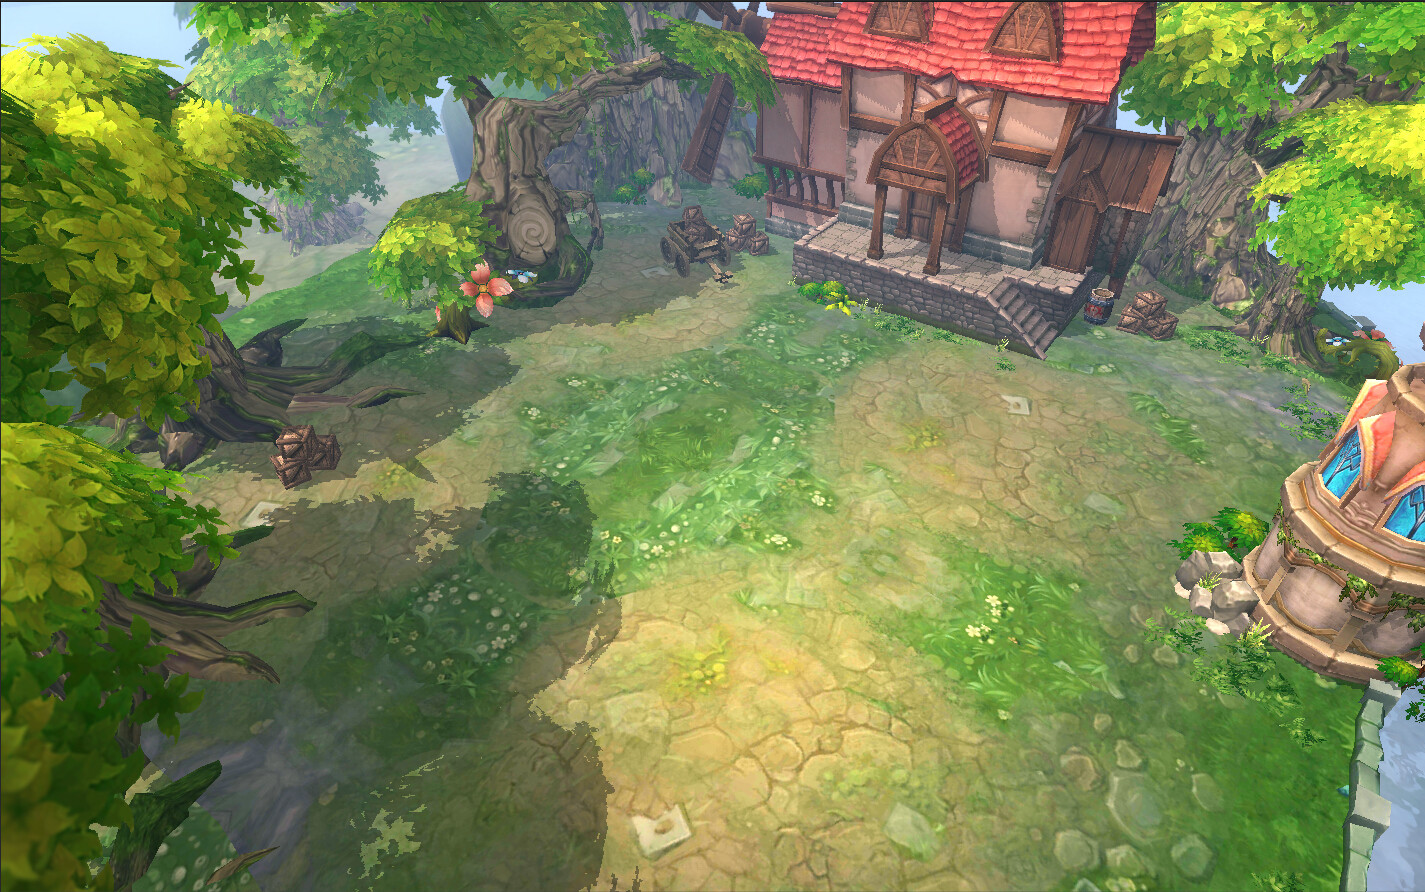 ArtStation - Mobile phone games Unity 3D project, Kita He